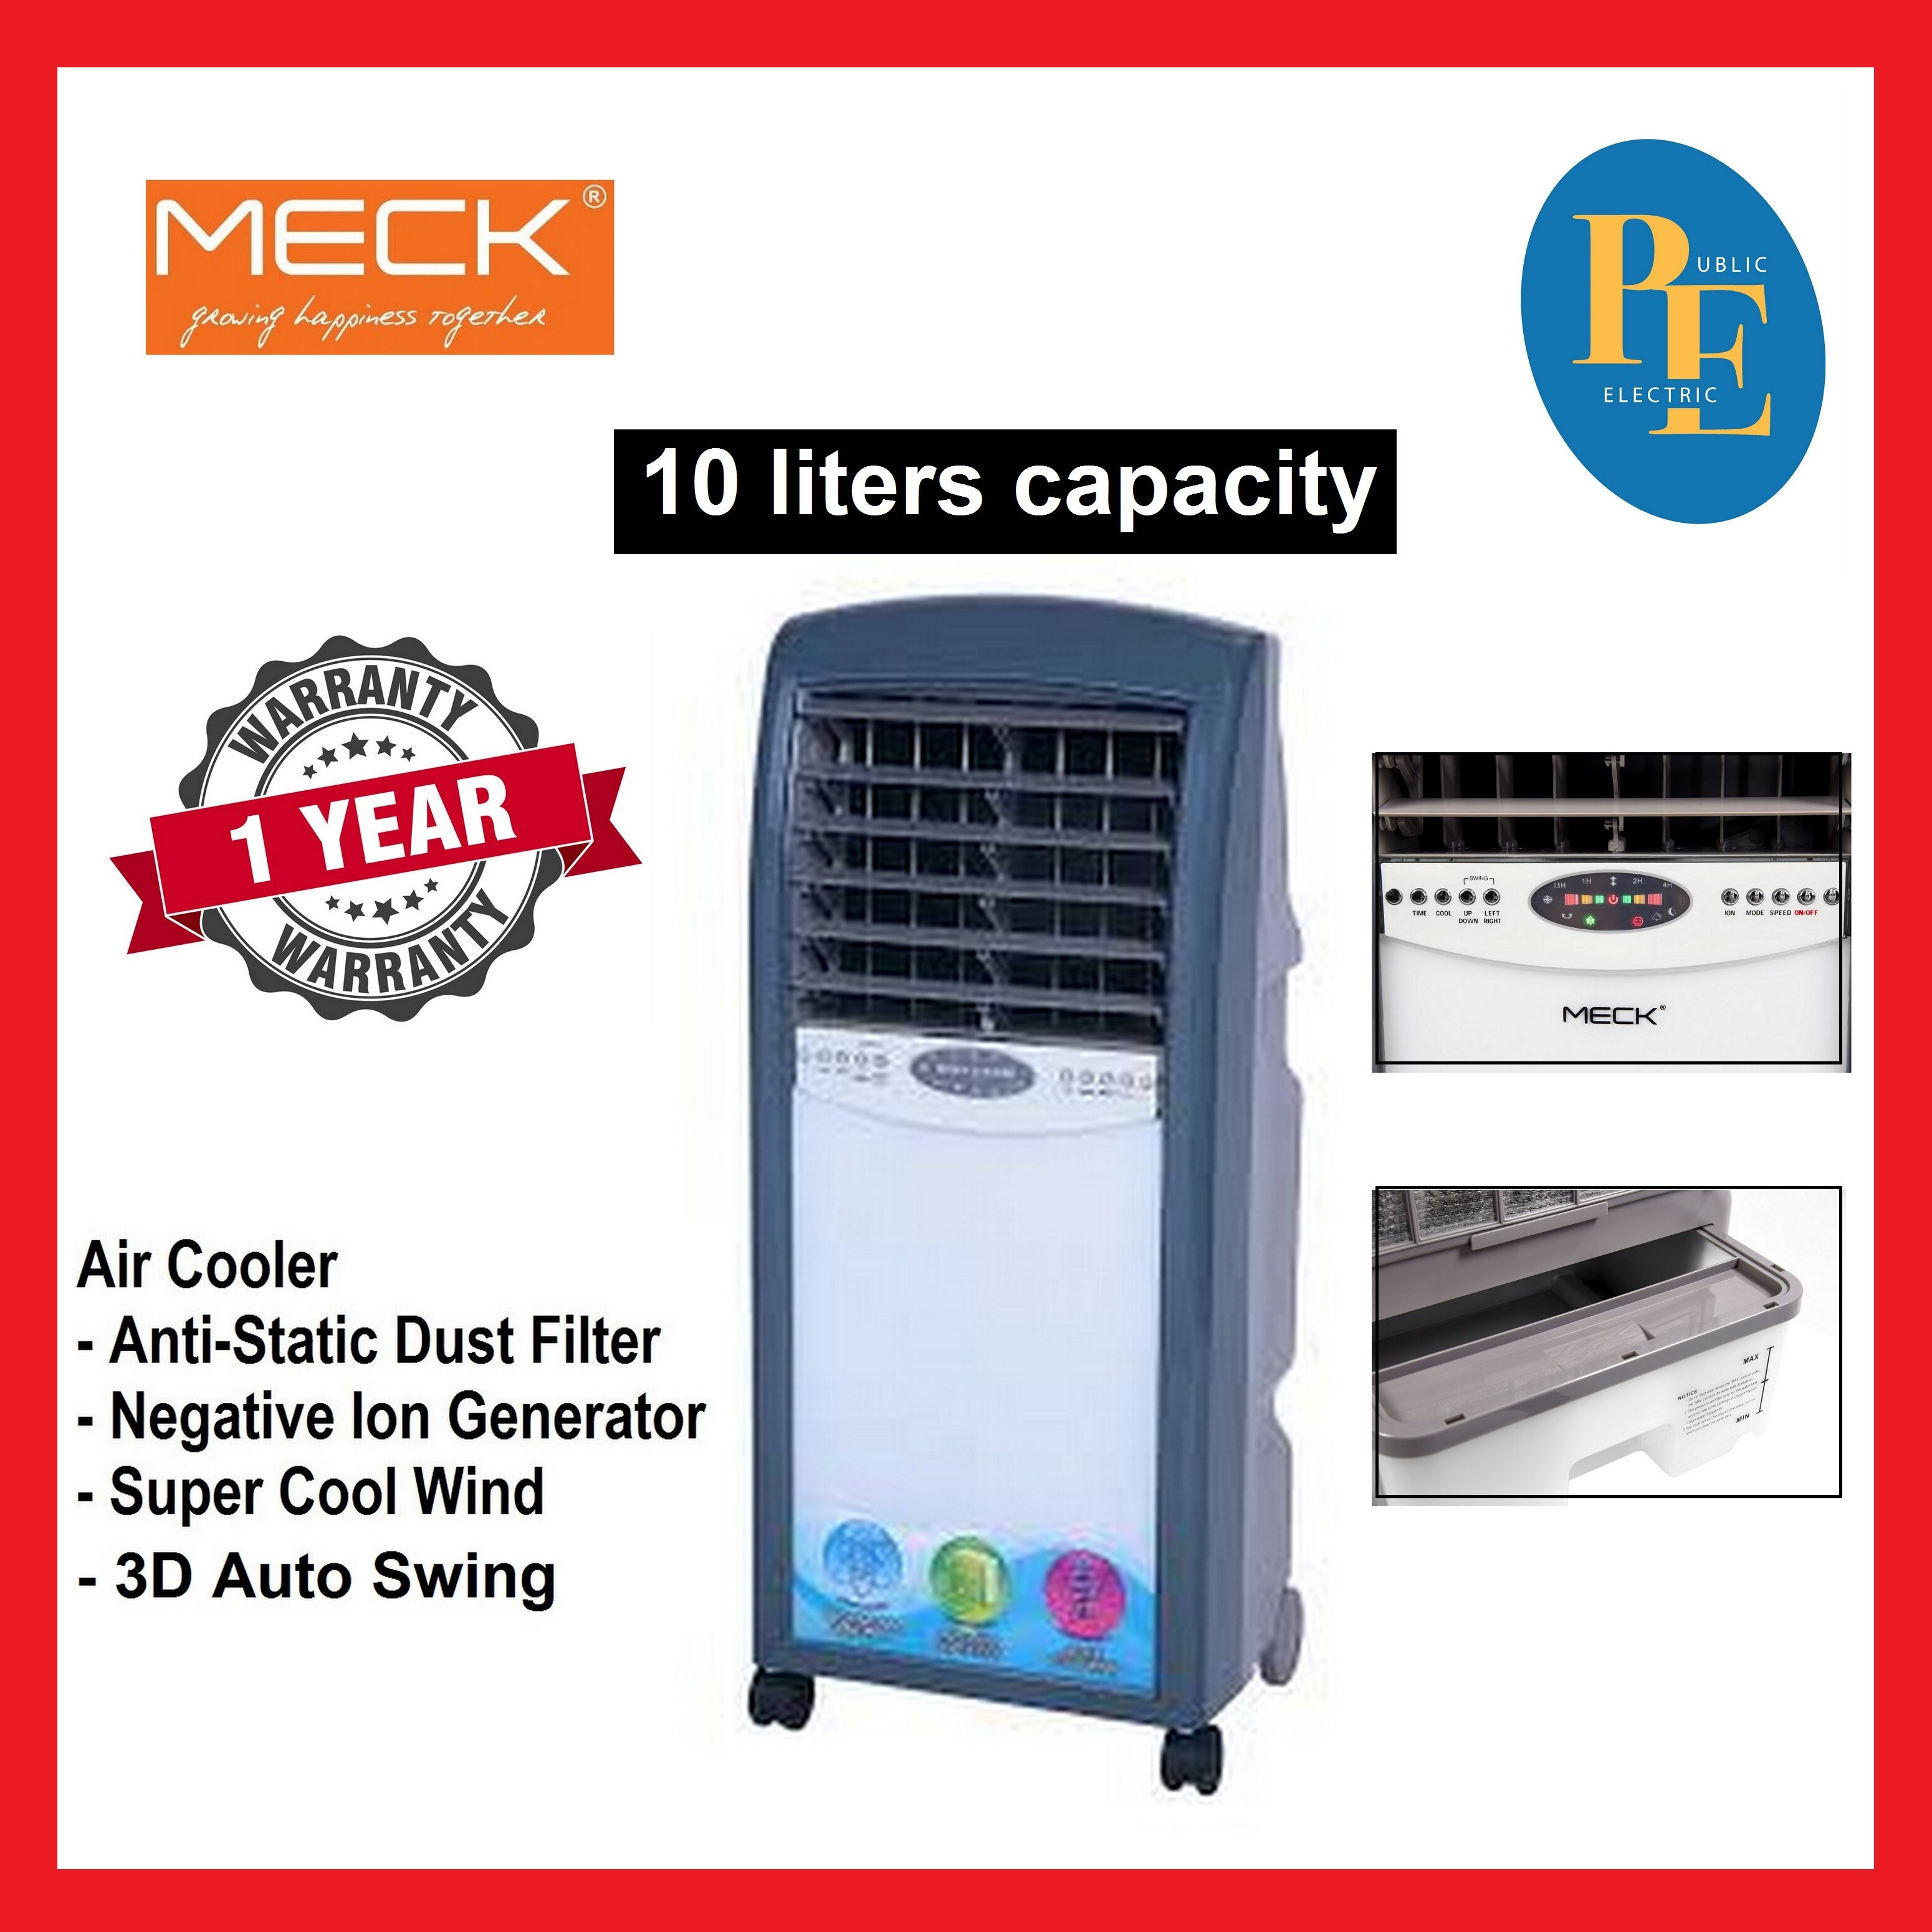 Meck Super Cool Wind Air Cooler 10 Litre - MAC-1600BL